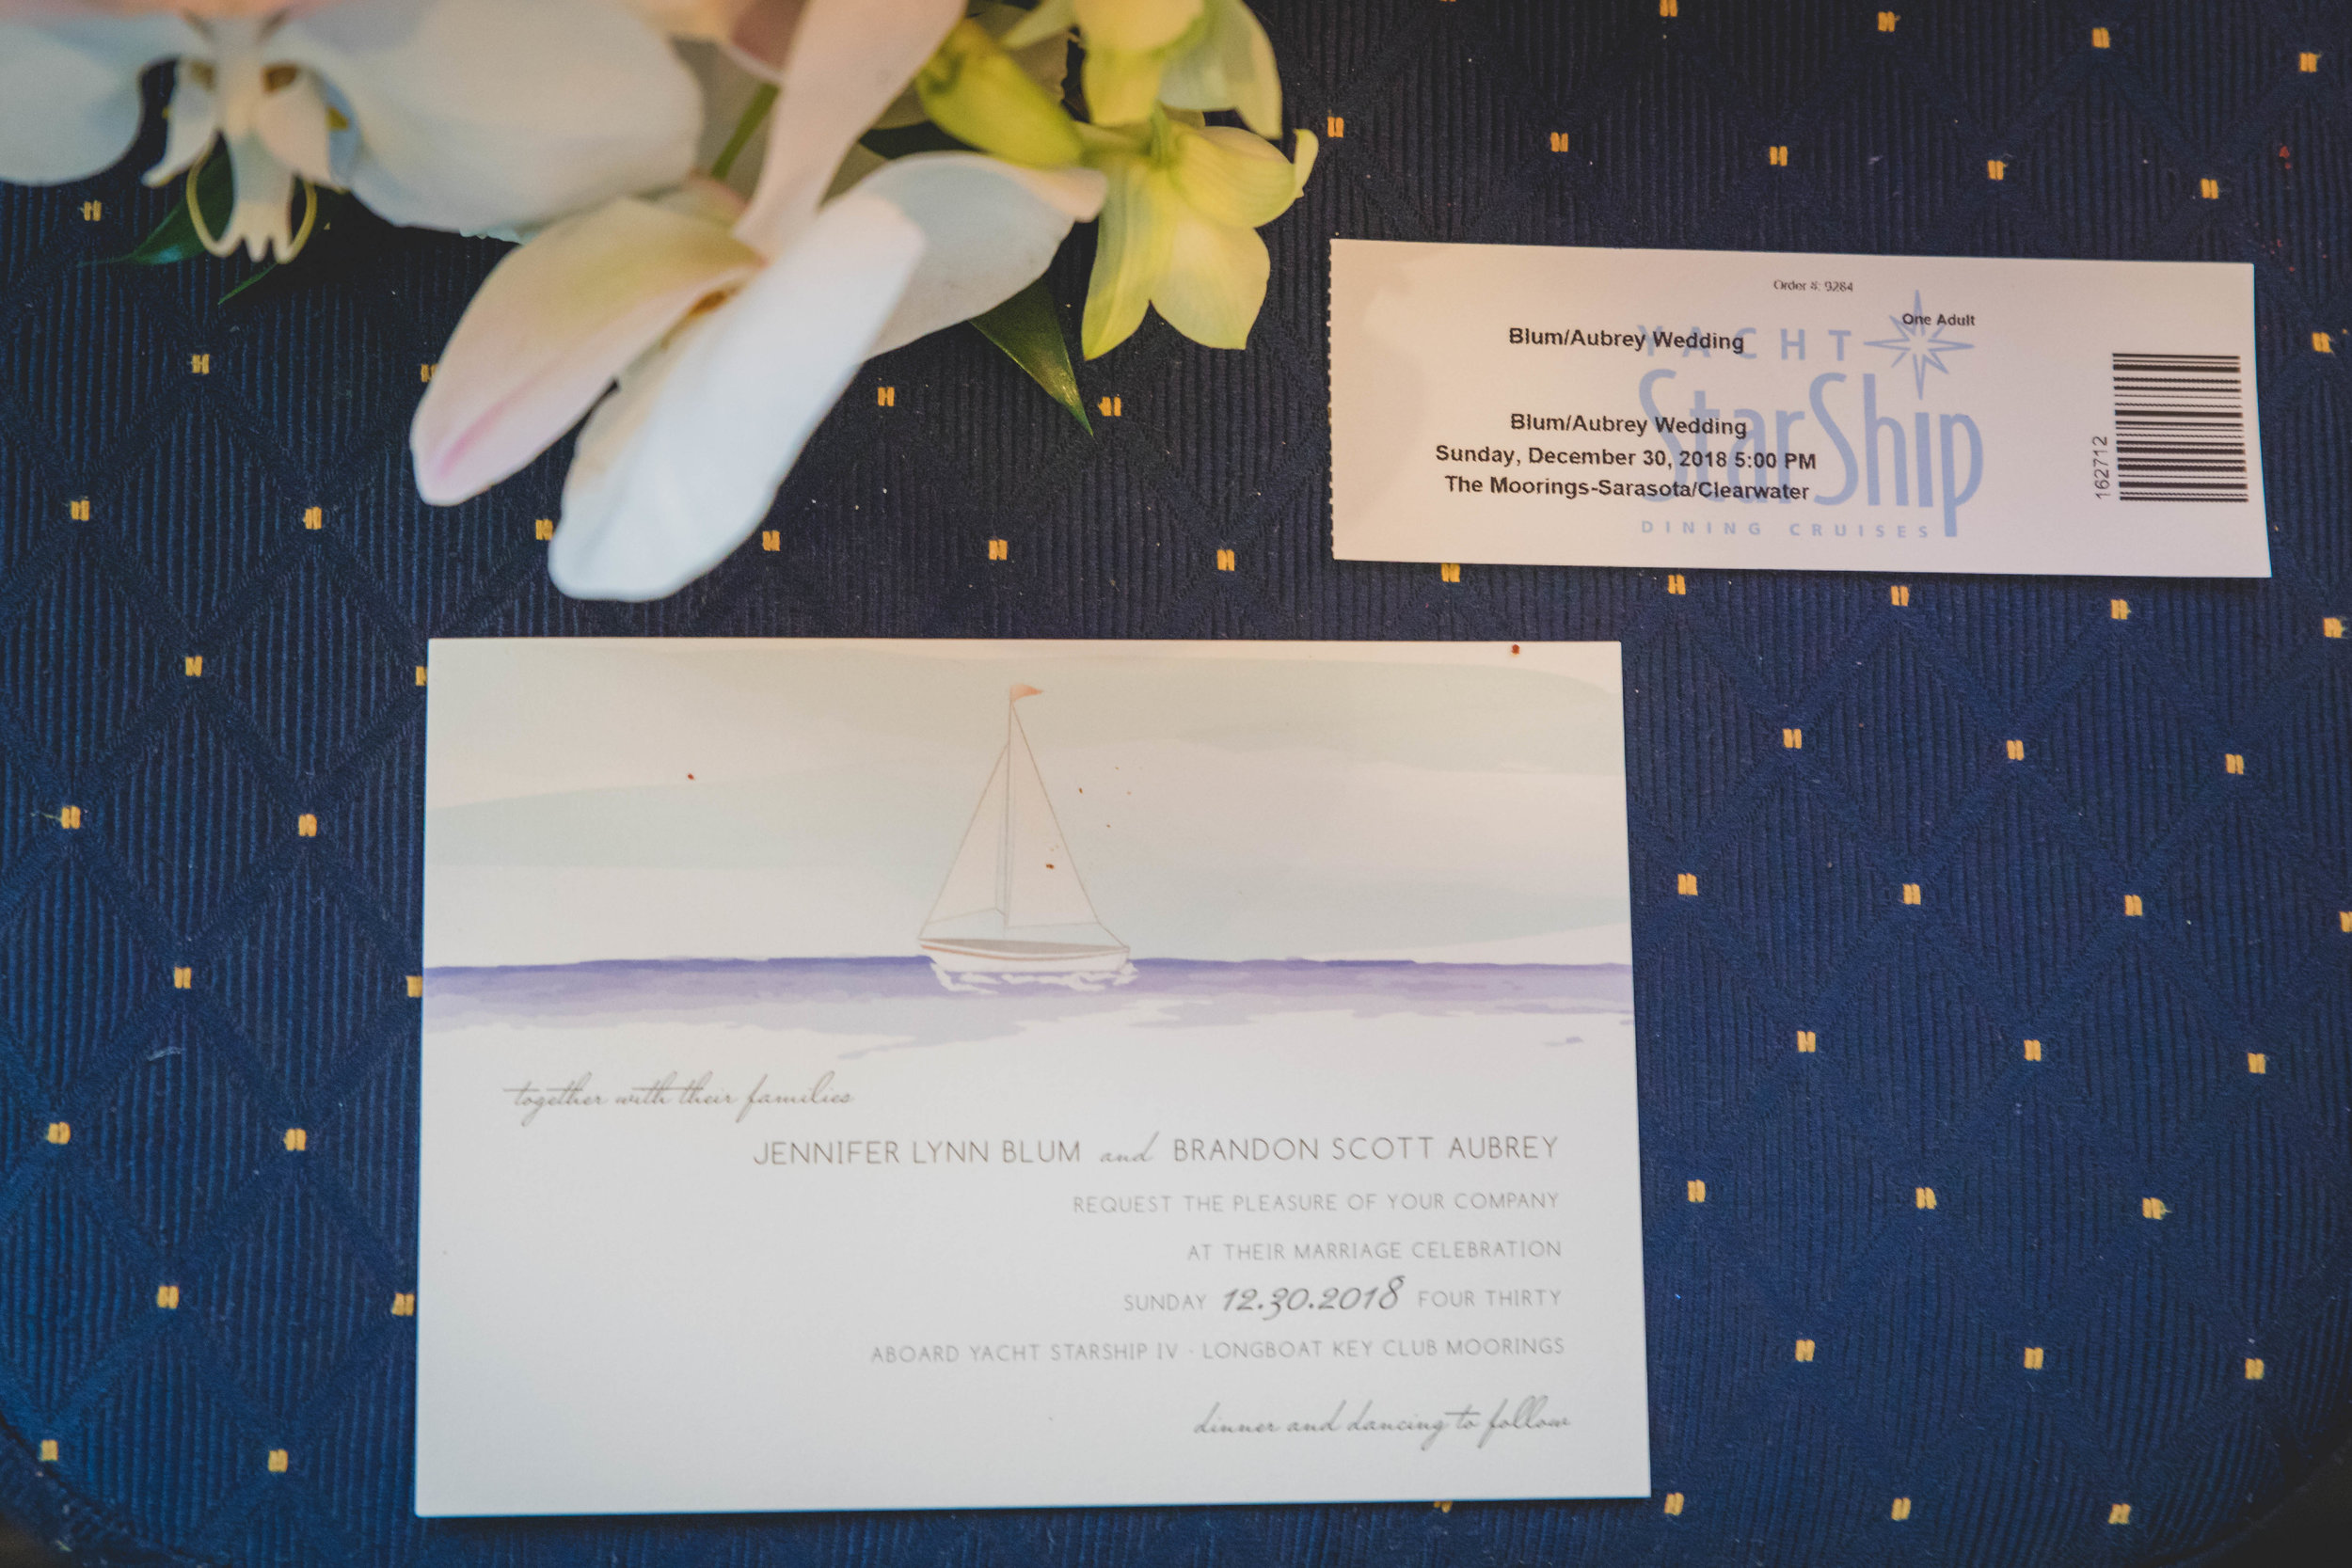 A nautical themed wedding invitation and admission ticket